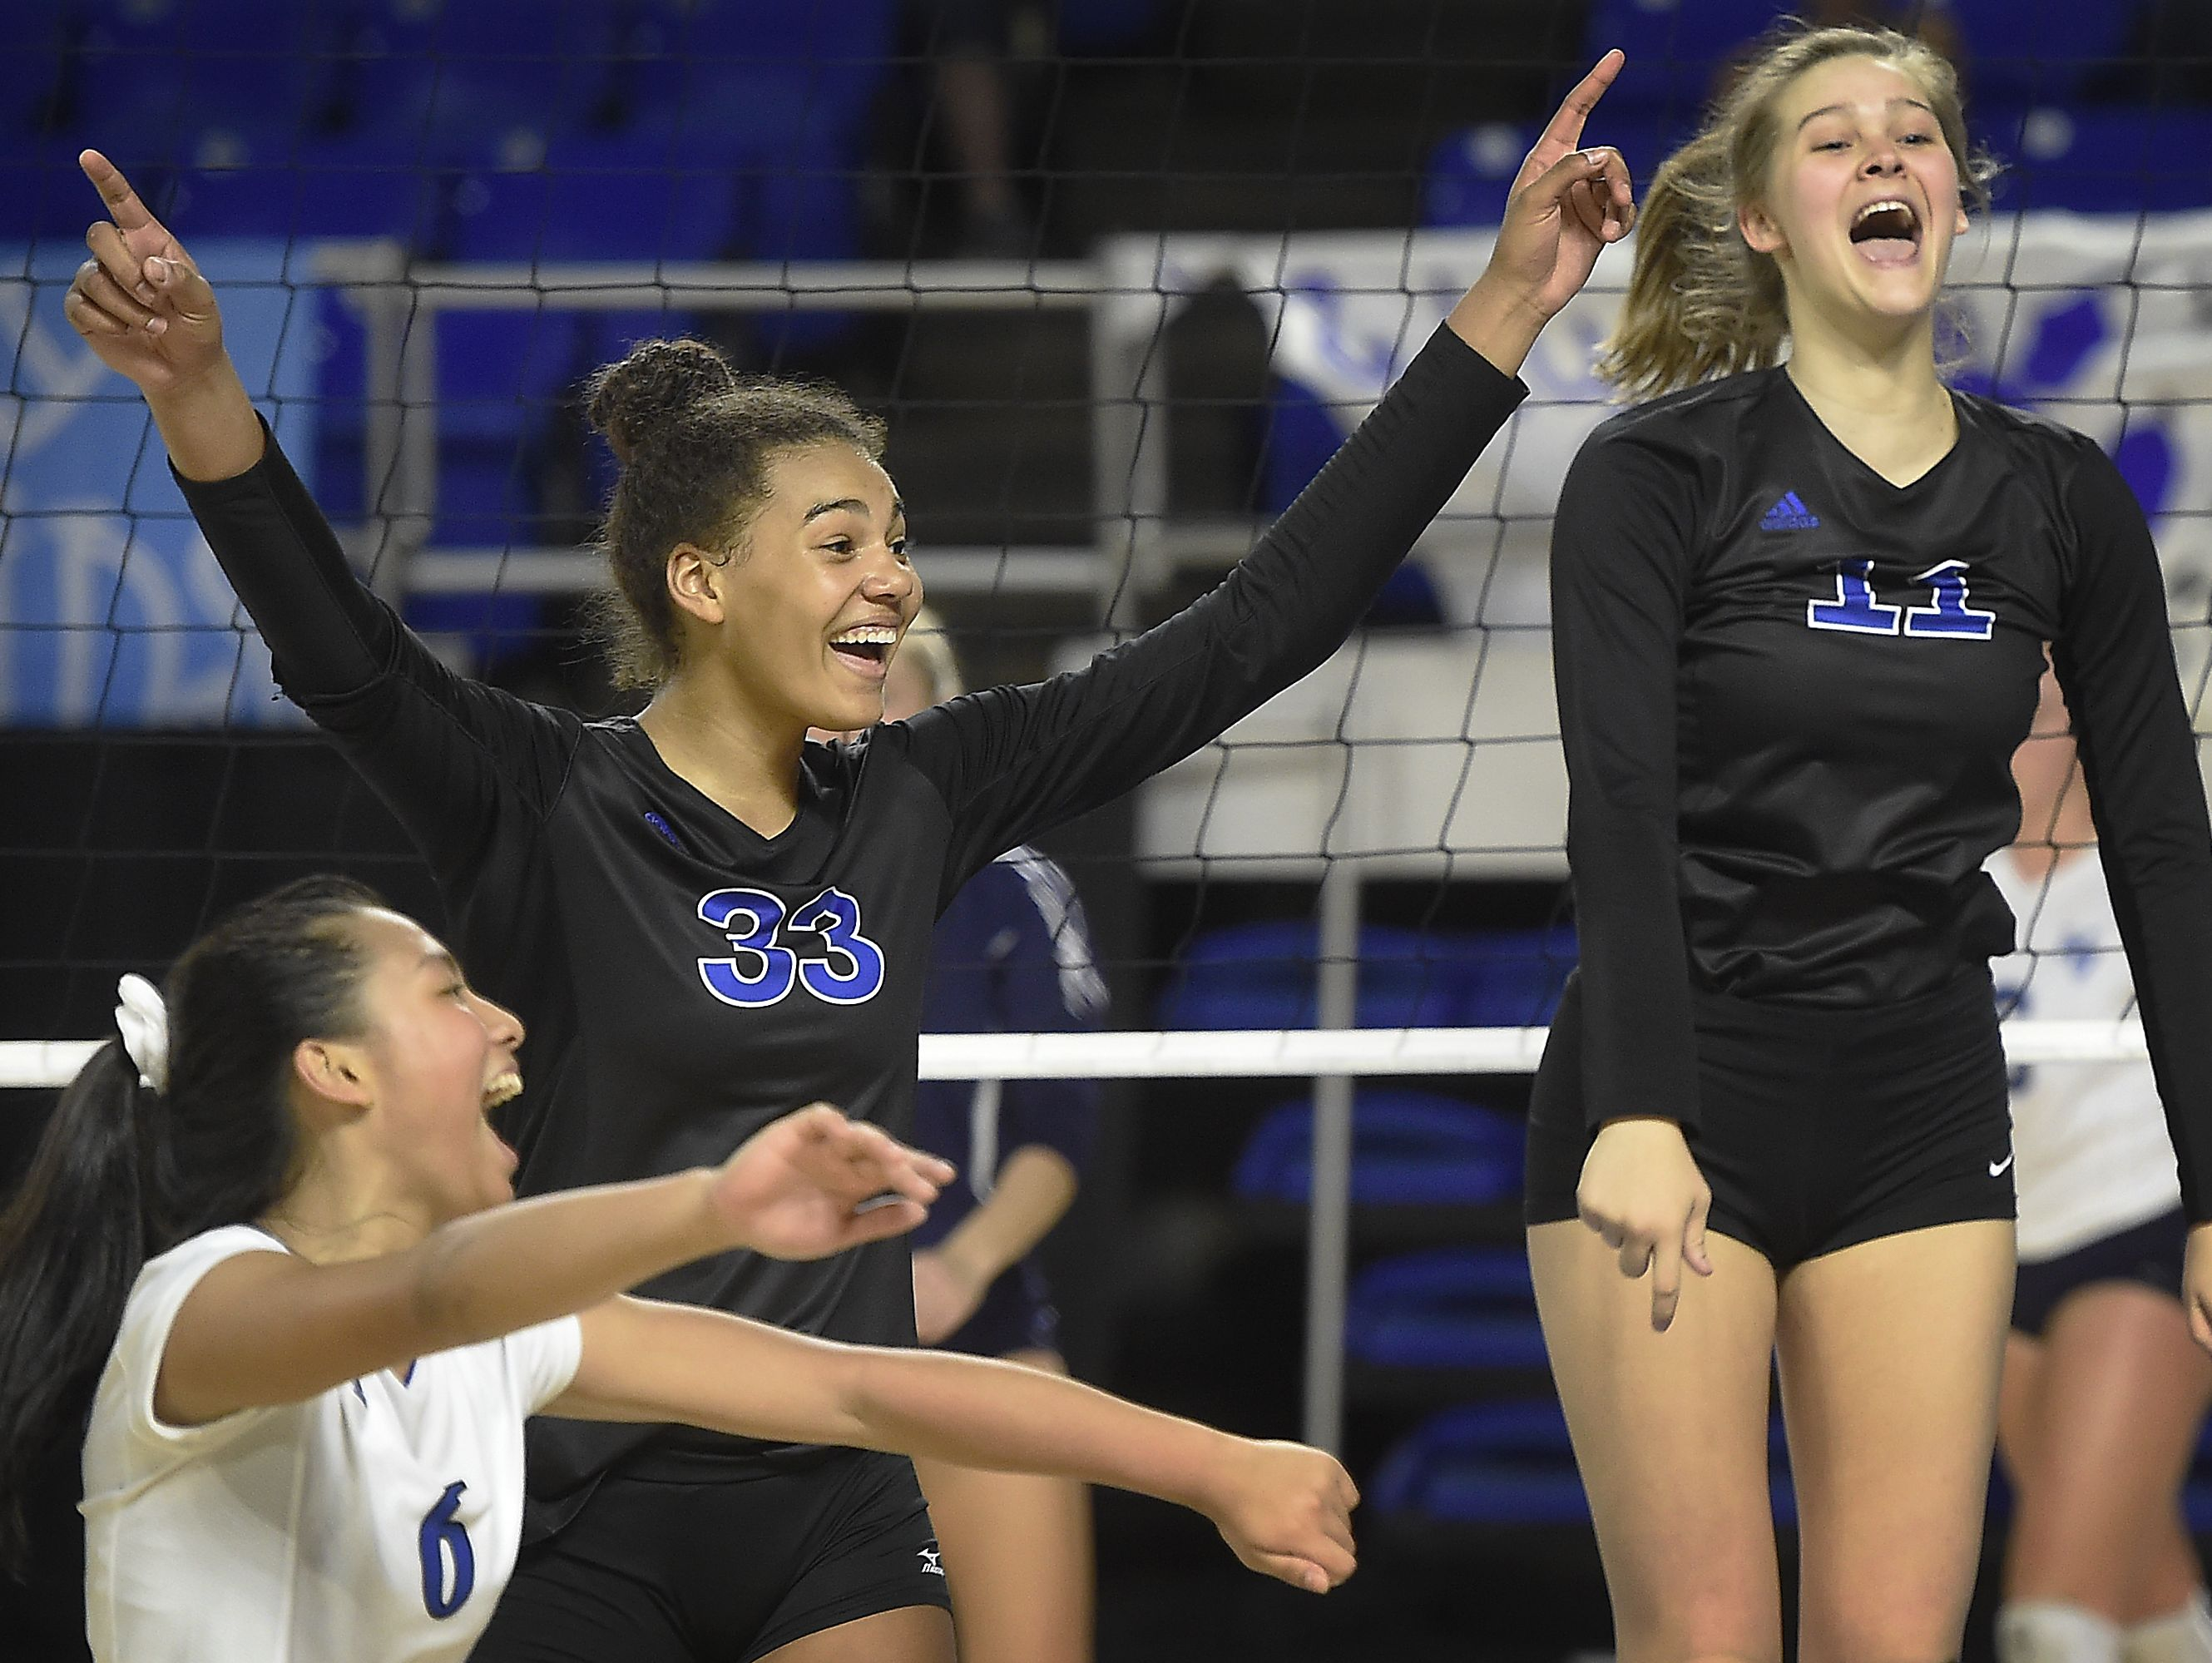 Brentwood players Andrea Acevedo (6), Logan Eggleston (33) and Celia Lamb (11) celebrate their win over Hardin Valley at MTSU's Murphy Center during the TSSAA volleyball state tournament. Thursday Oct. 20, 2016, in Murfreesboro, Tenn.